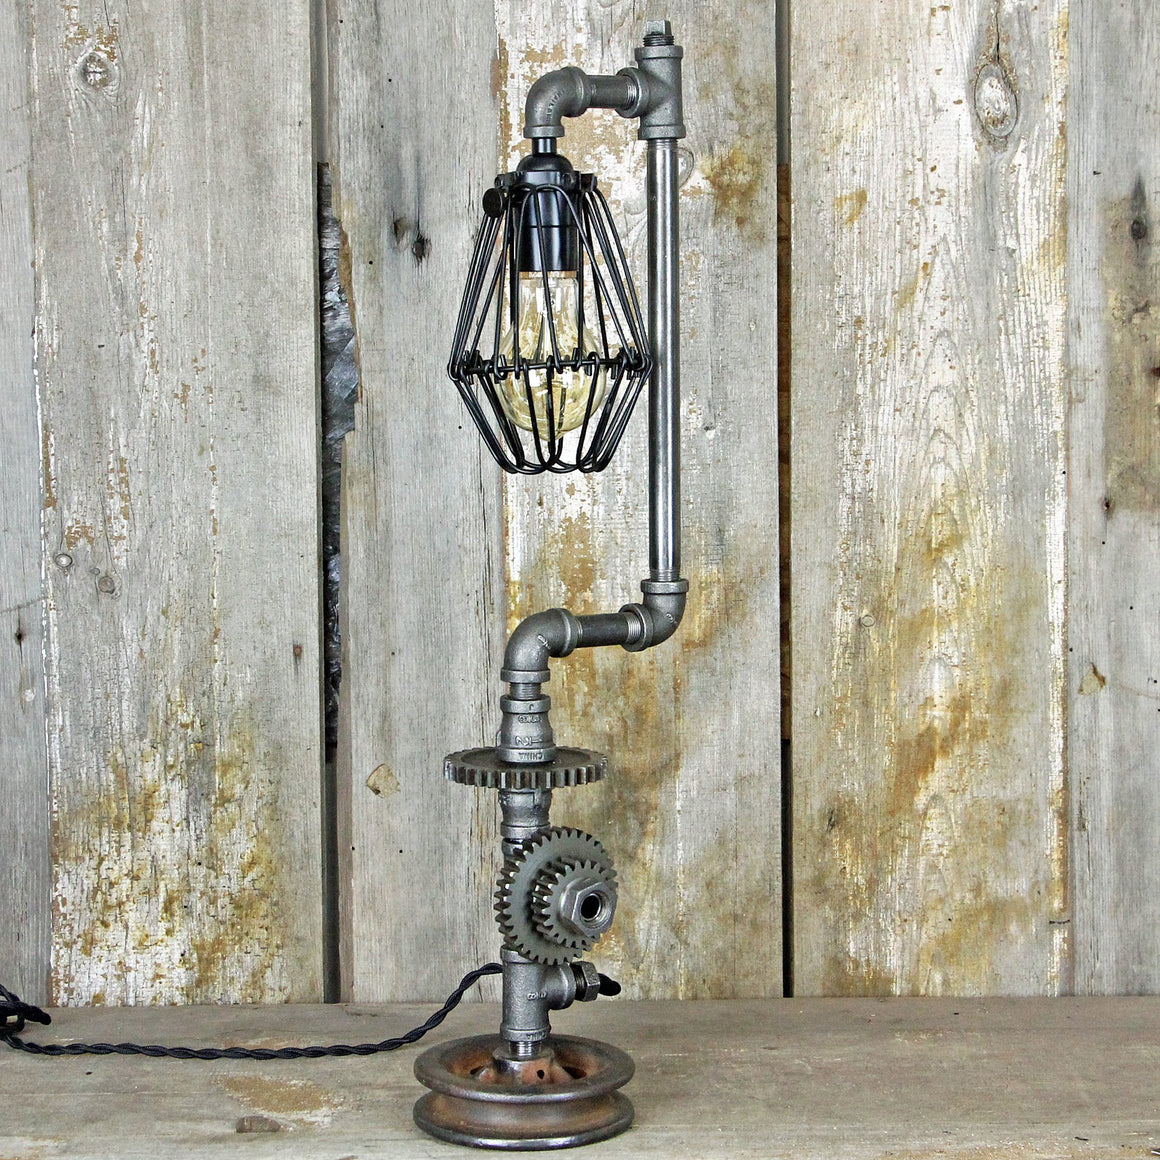 Steampunk Table Lamp with Industrial Gears #1945 - The Lighting Works